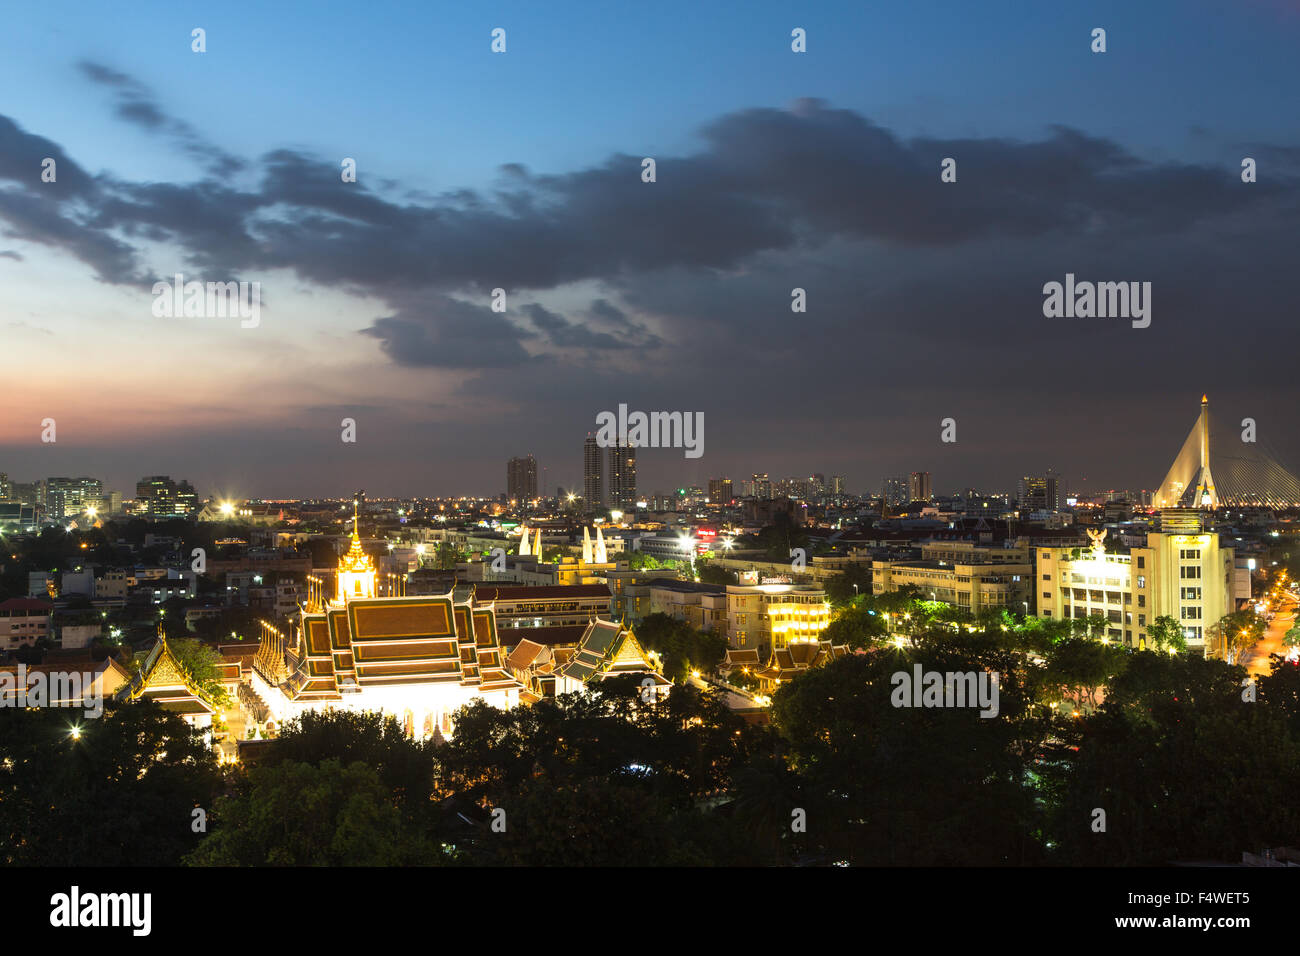 A night view of wat Thepthidaram in Bangkok old town. This city is Thailand capital city and dotted with Buddhist - Stock Image